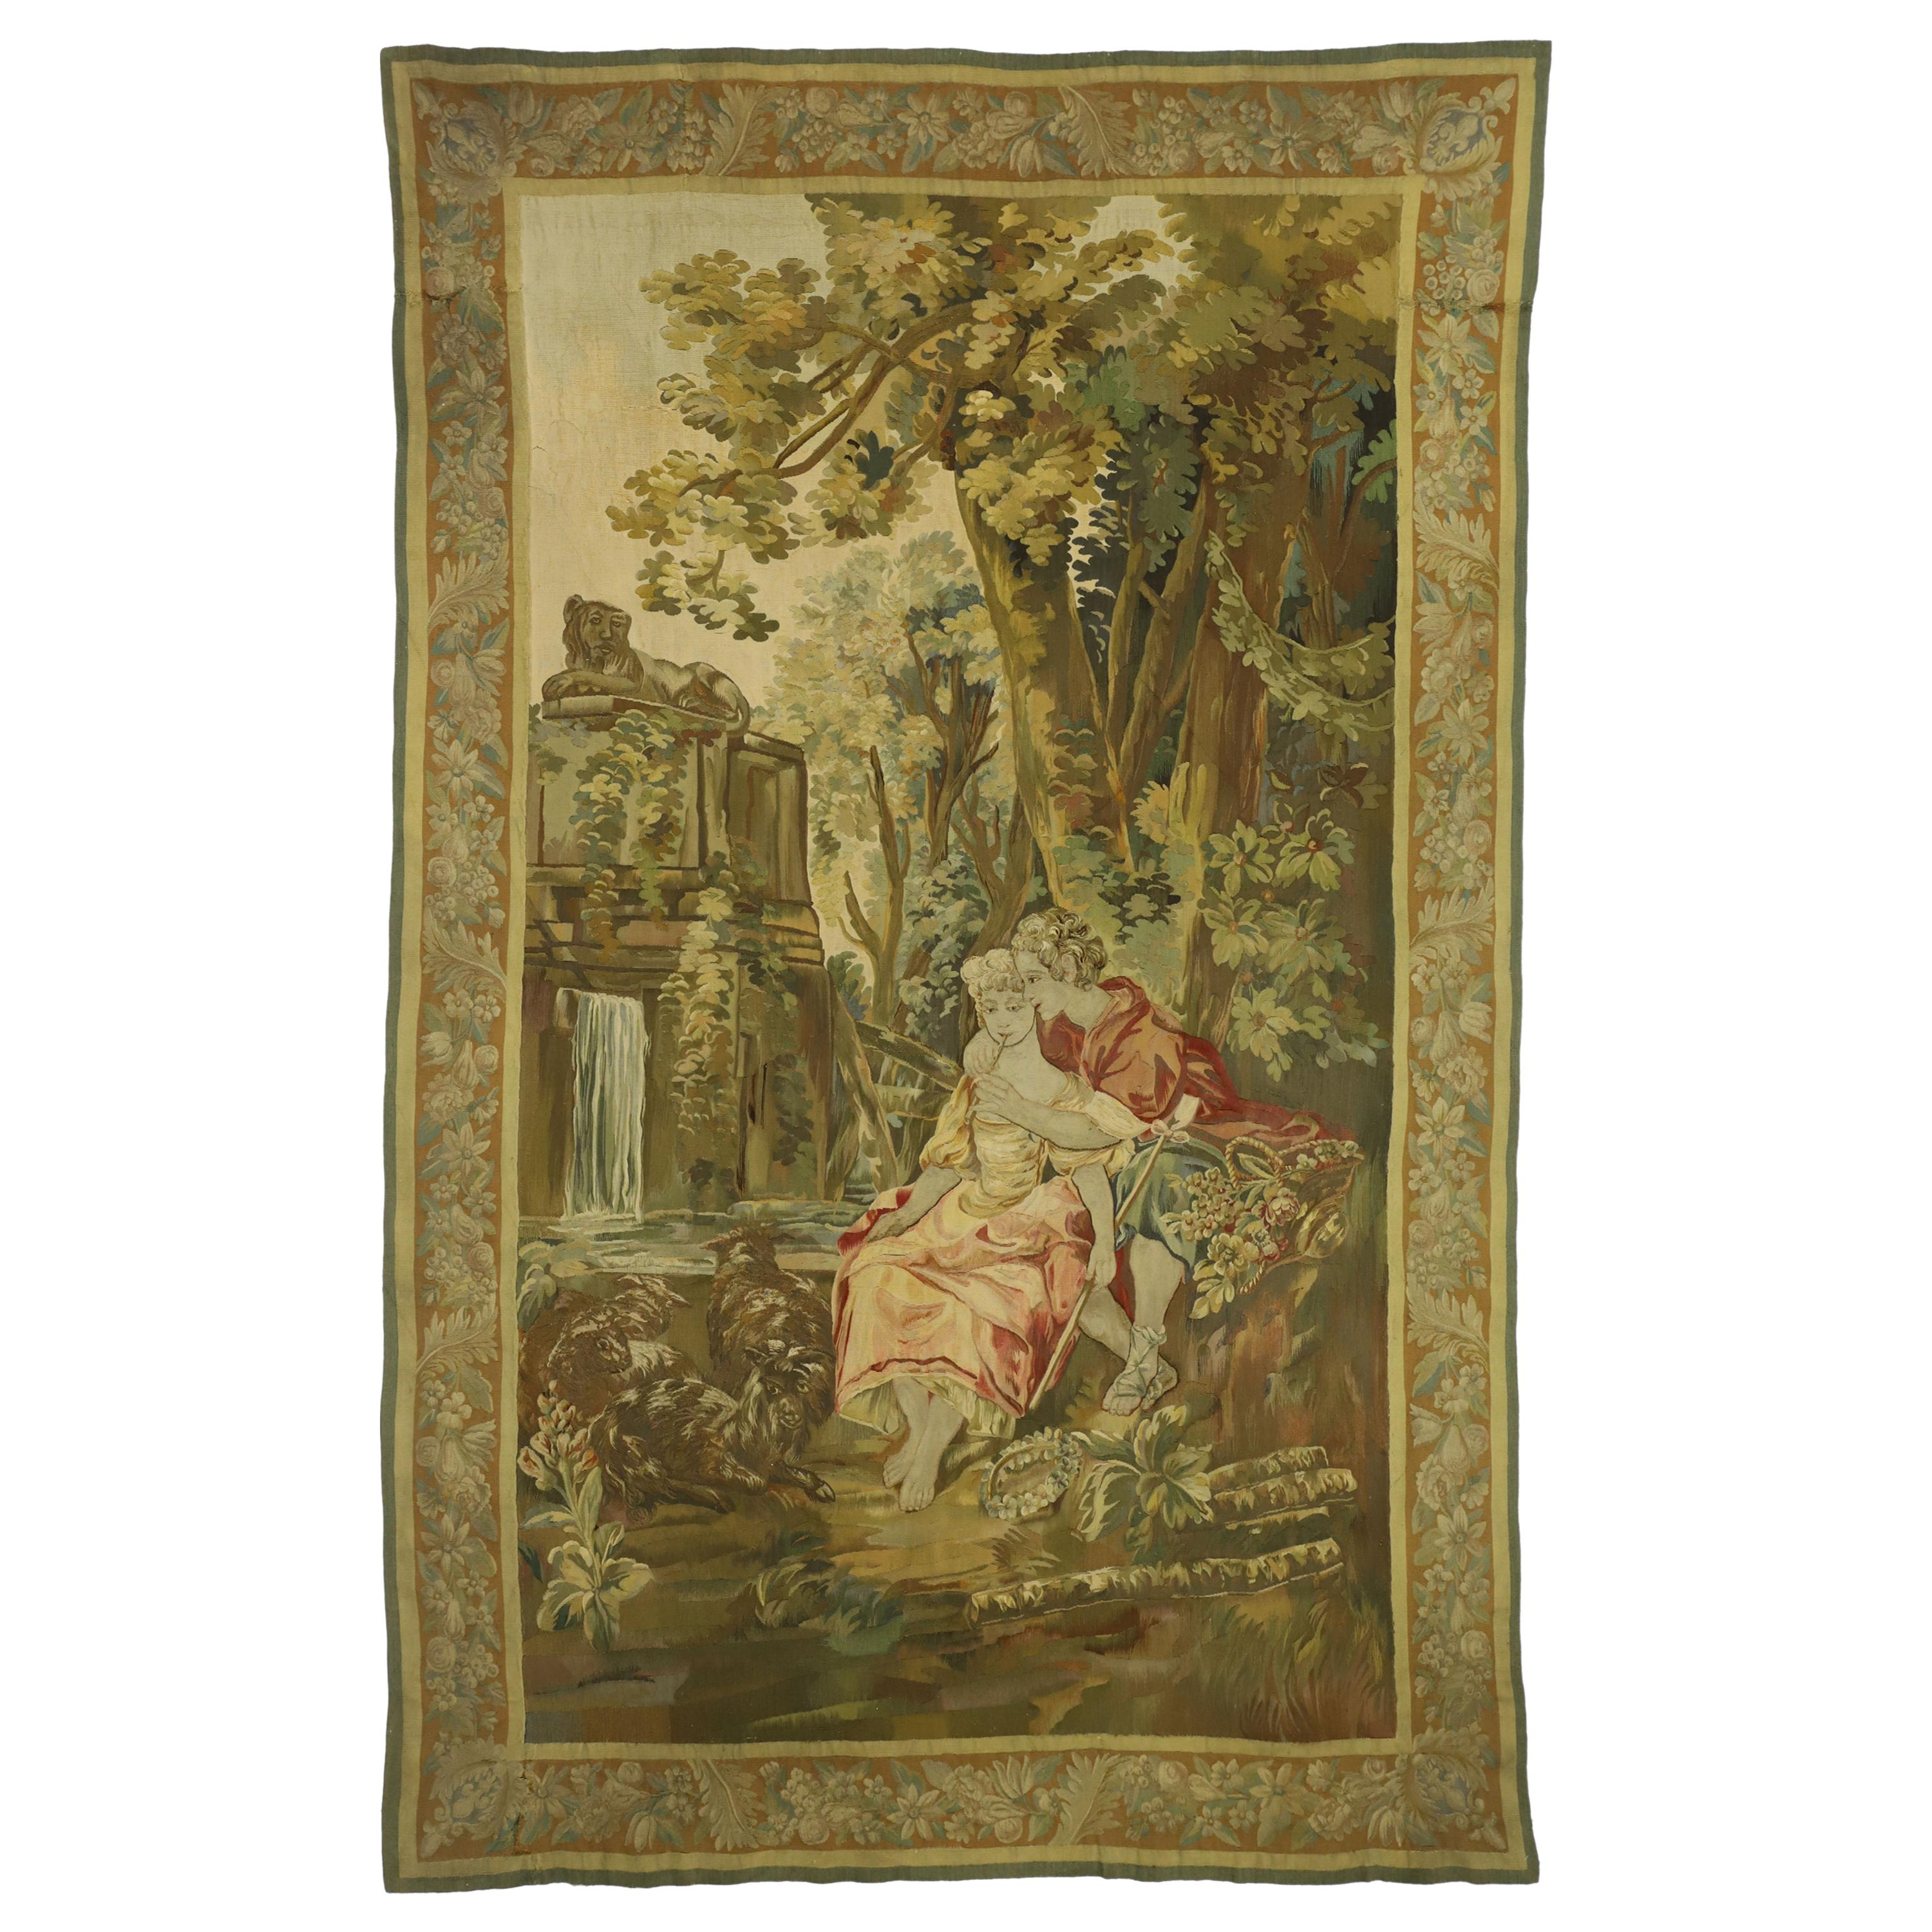 Antique French Rococo Tapestry Inspired by Francois Boucher The Agreeable Lesson